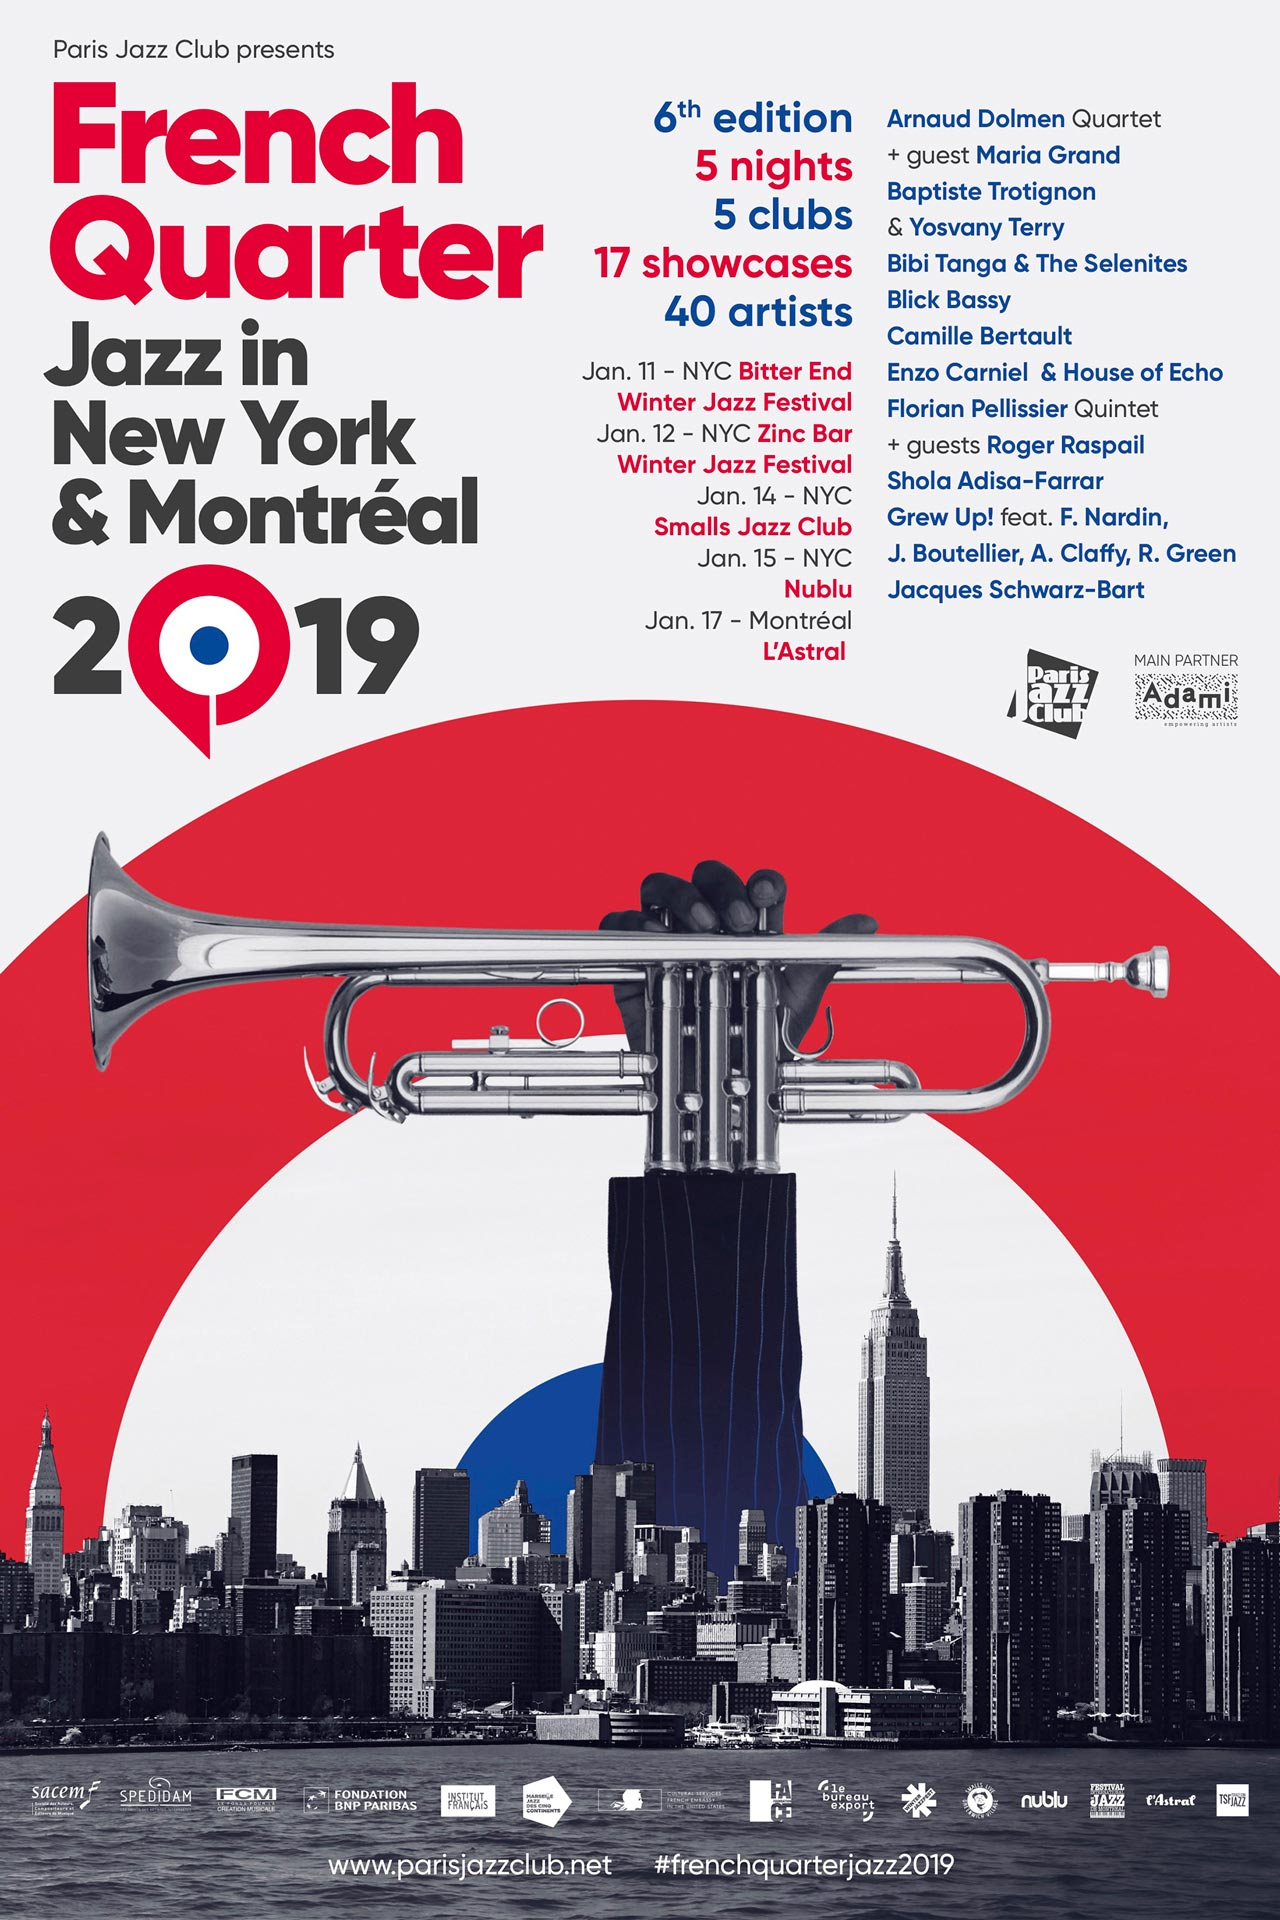 French Quarter, Jazz, New York, NYC, Montréal, Winter Jazz Festival, Smalls, Nublu, Astral, Adami, Showcase, Music